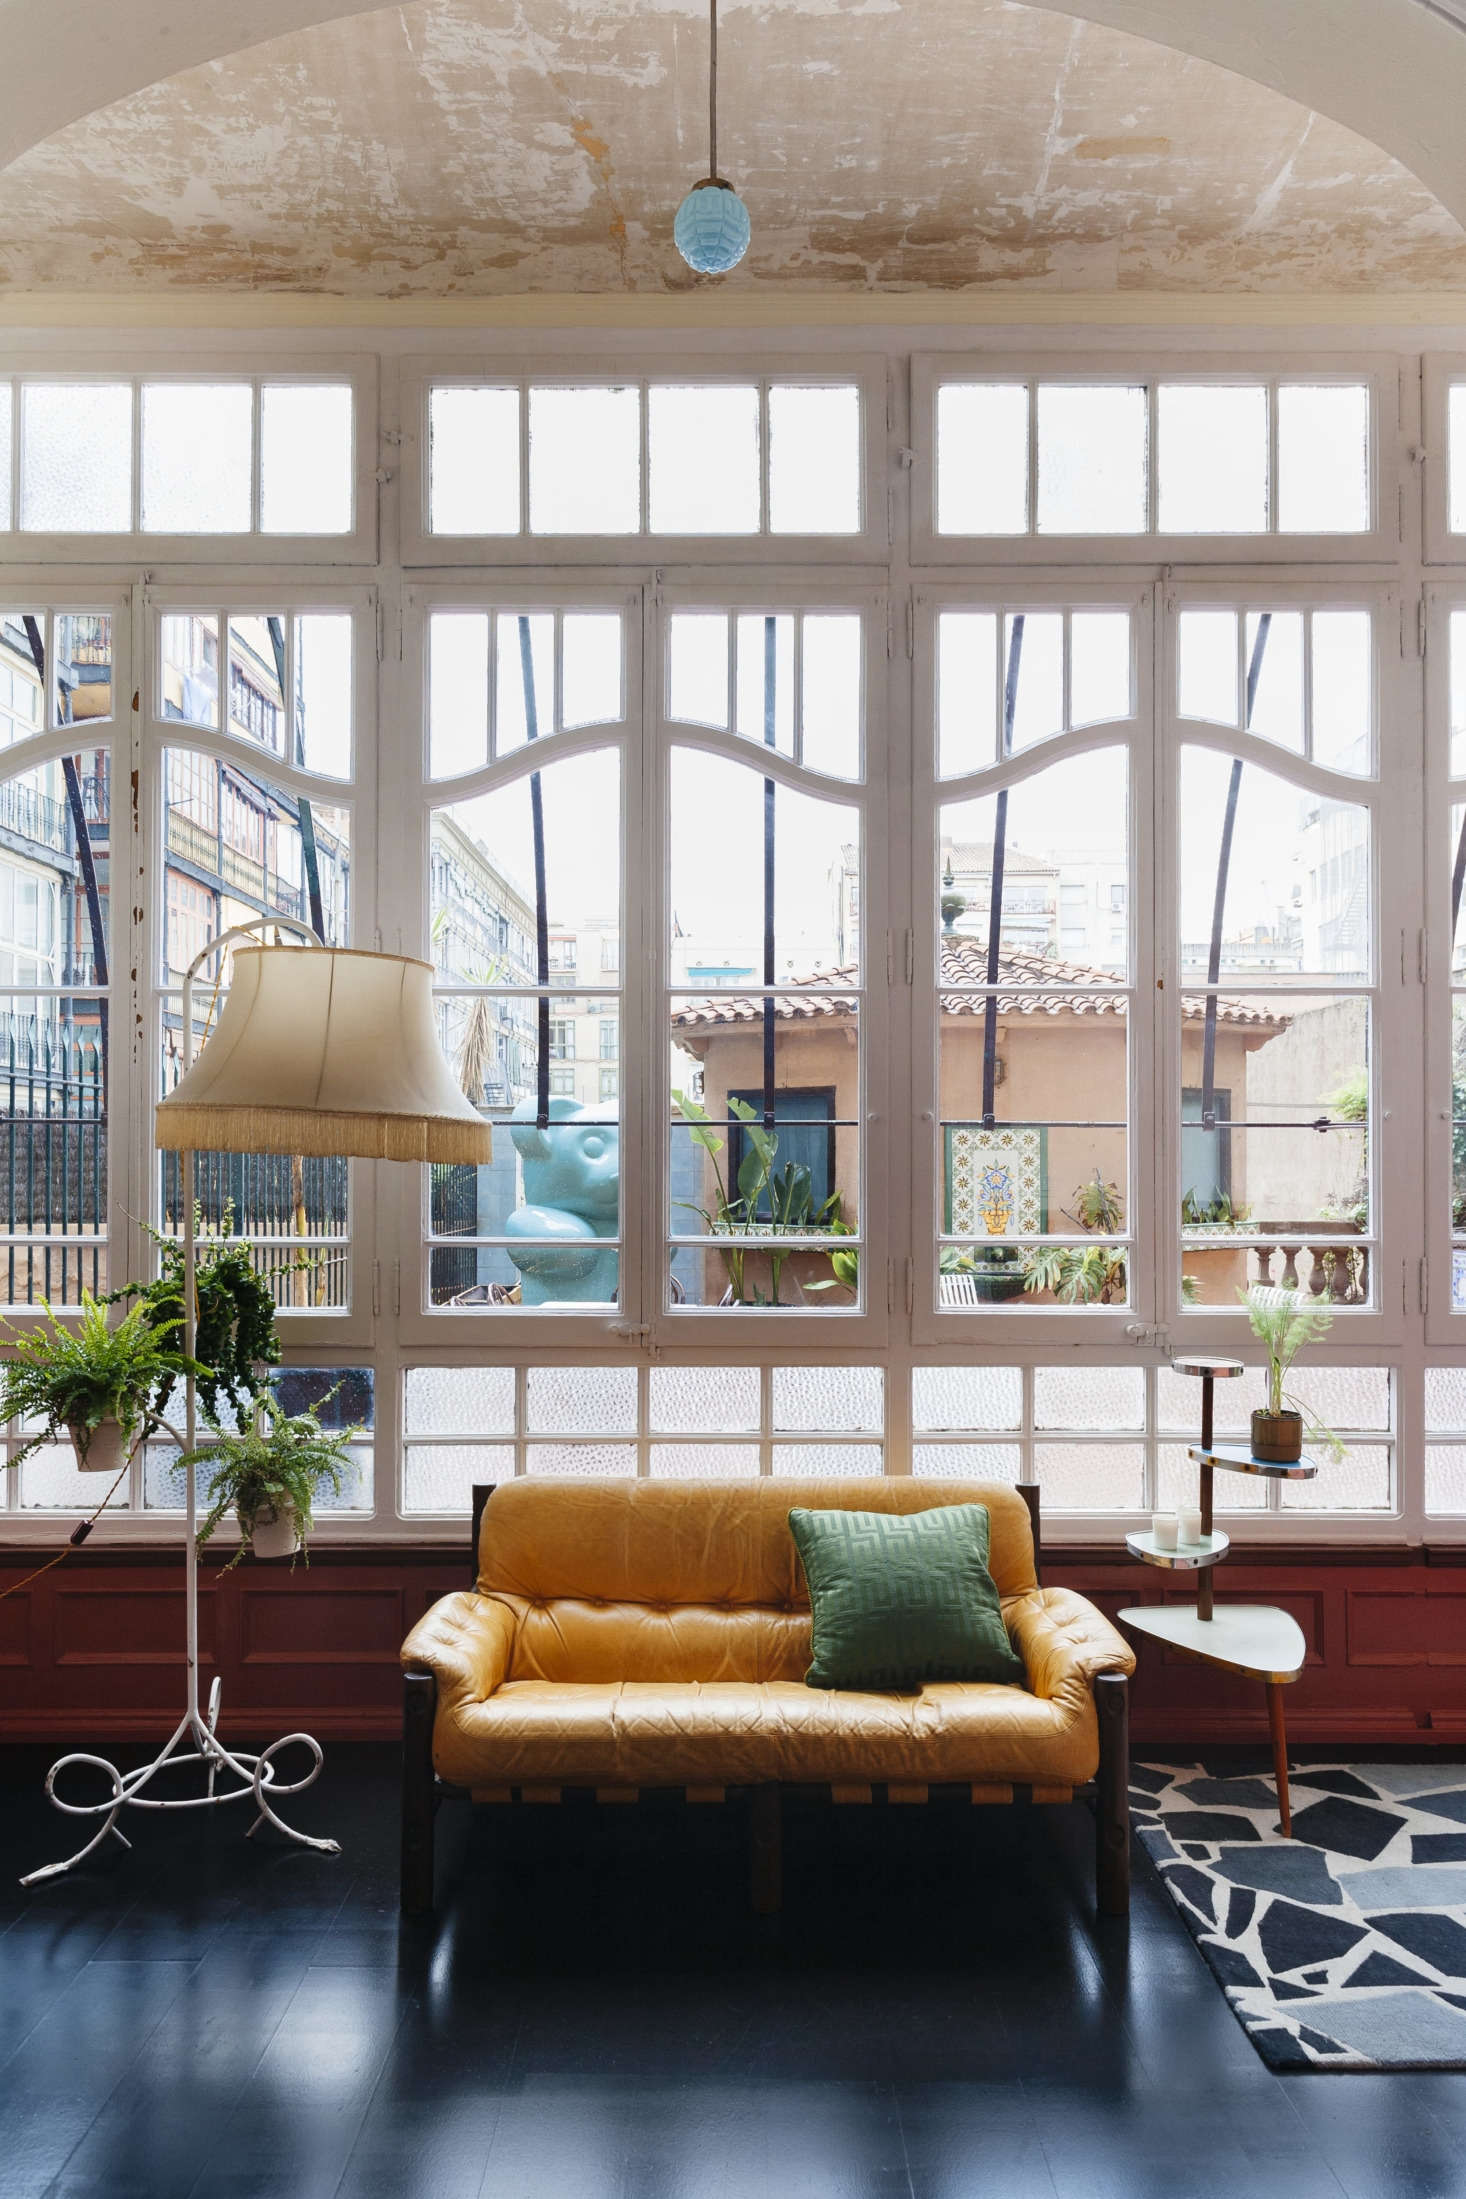 The room overlooks a roof terrace with a tiled pavilion. Just about all of the furnishings are flea market finds.